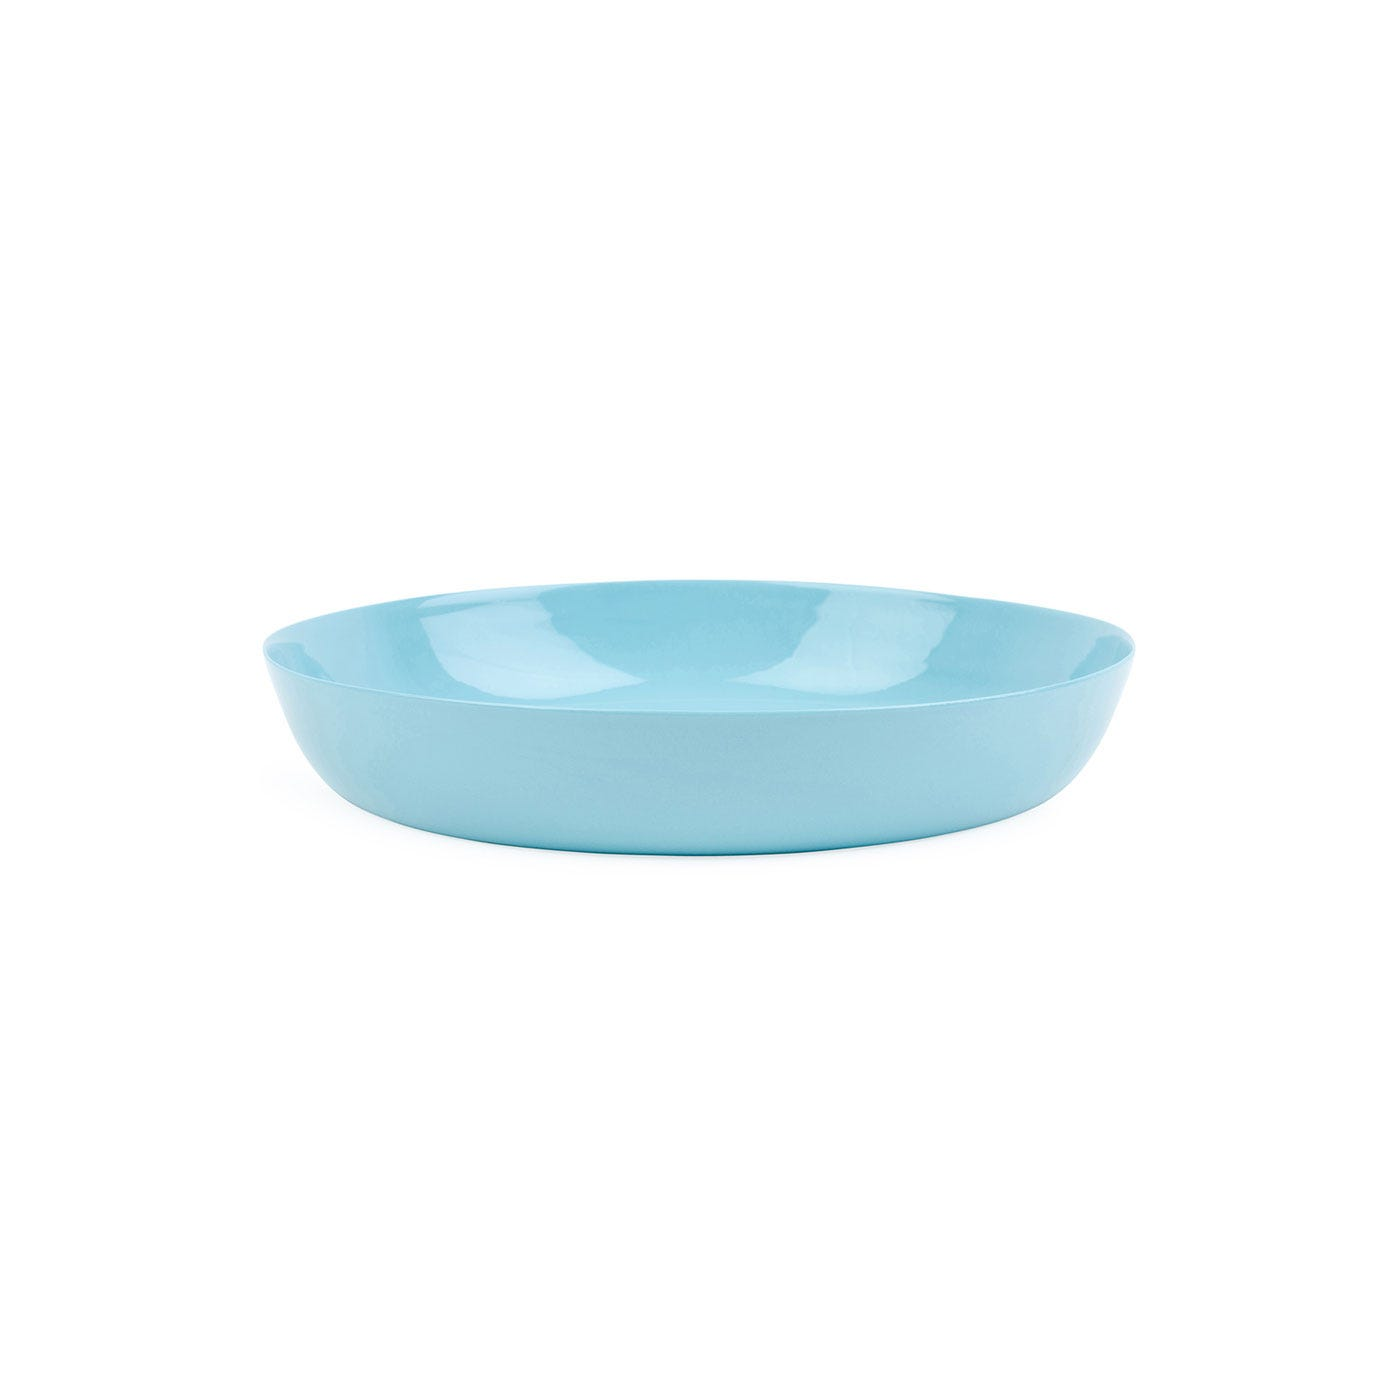 Porcelain Turquoise Cereal Bowl